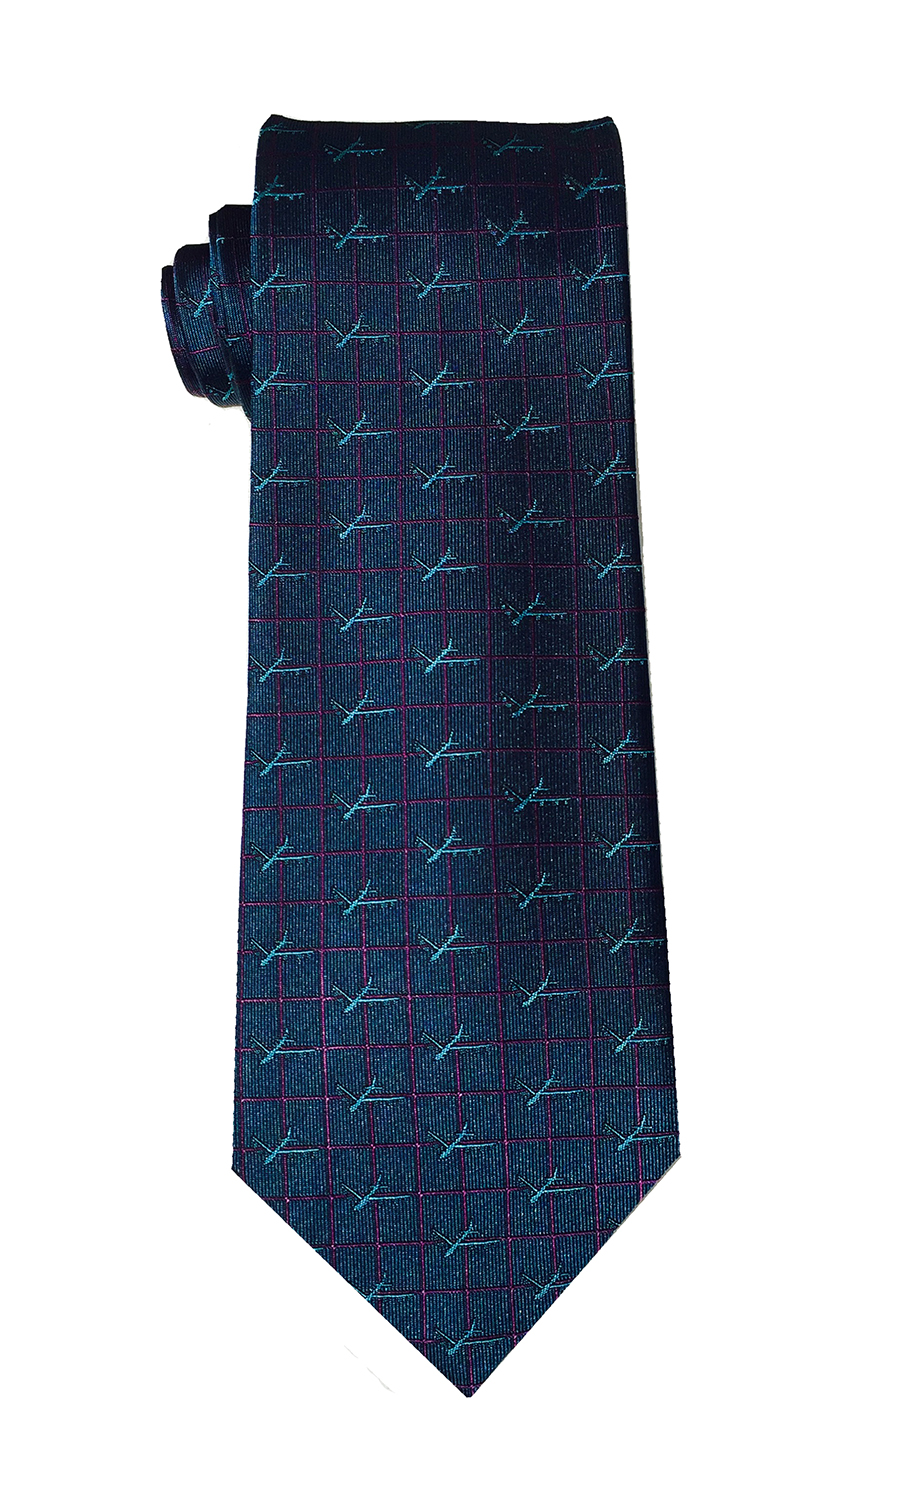 B-52 Stratofortress bomber tie in deep teal